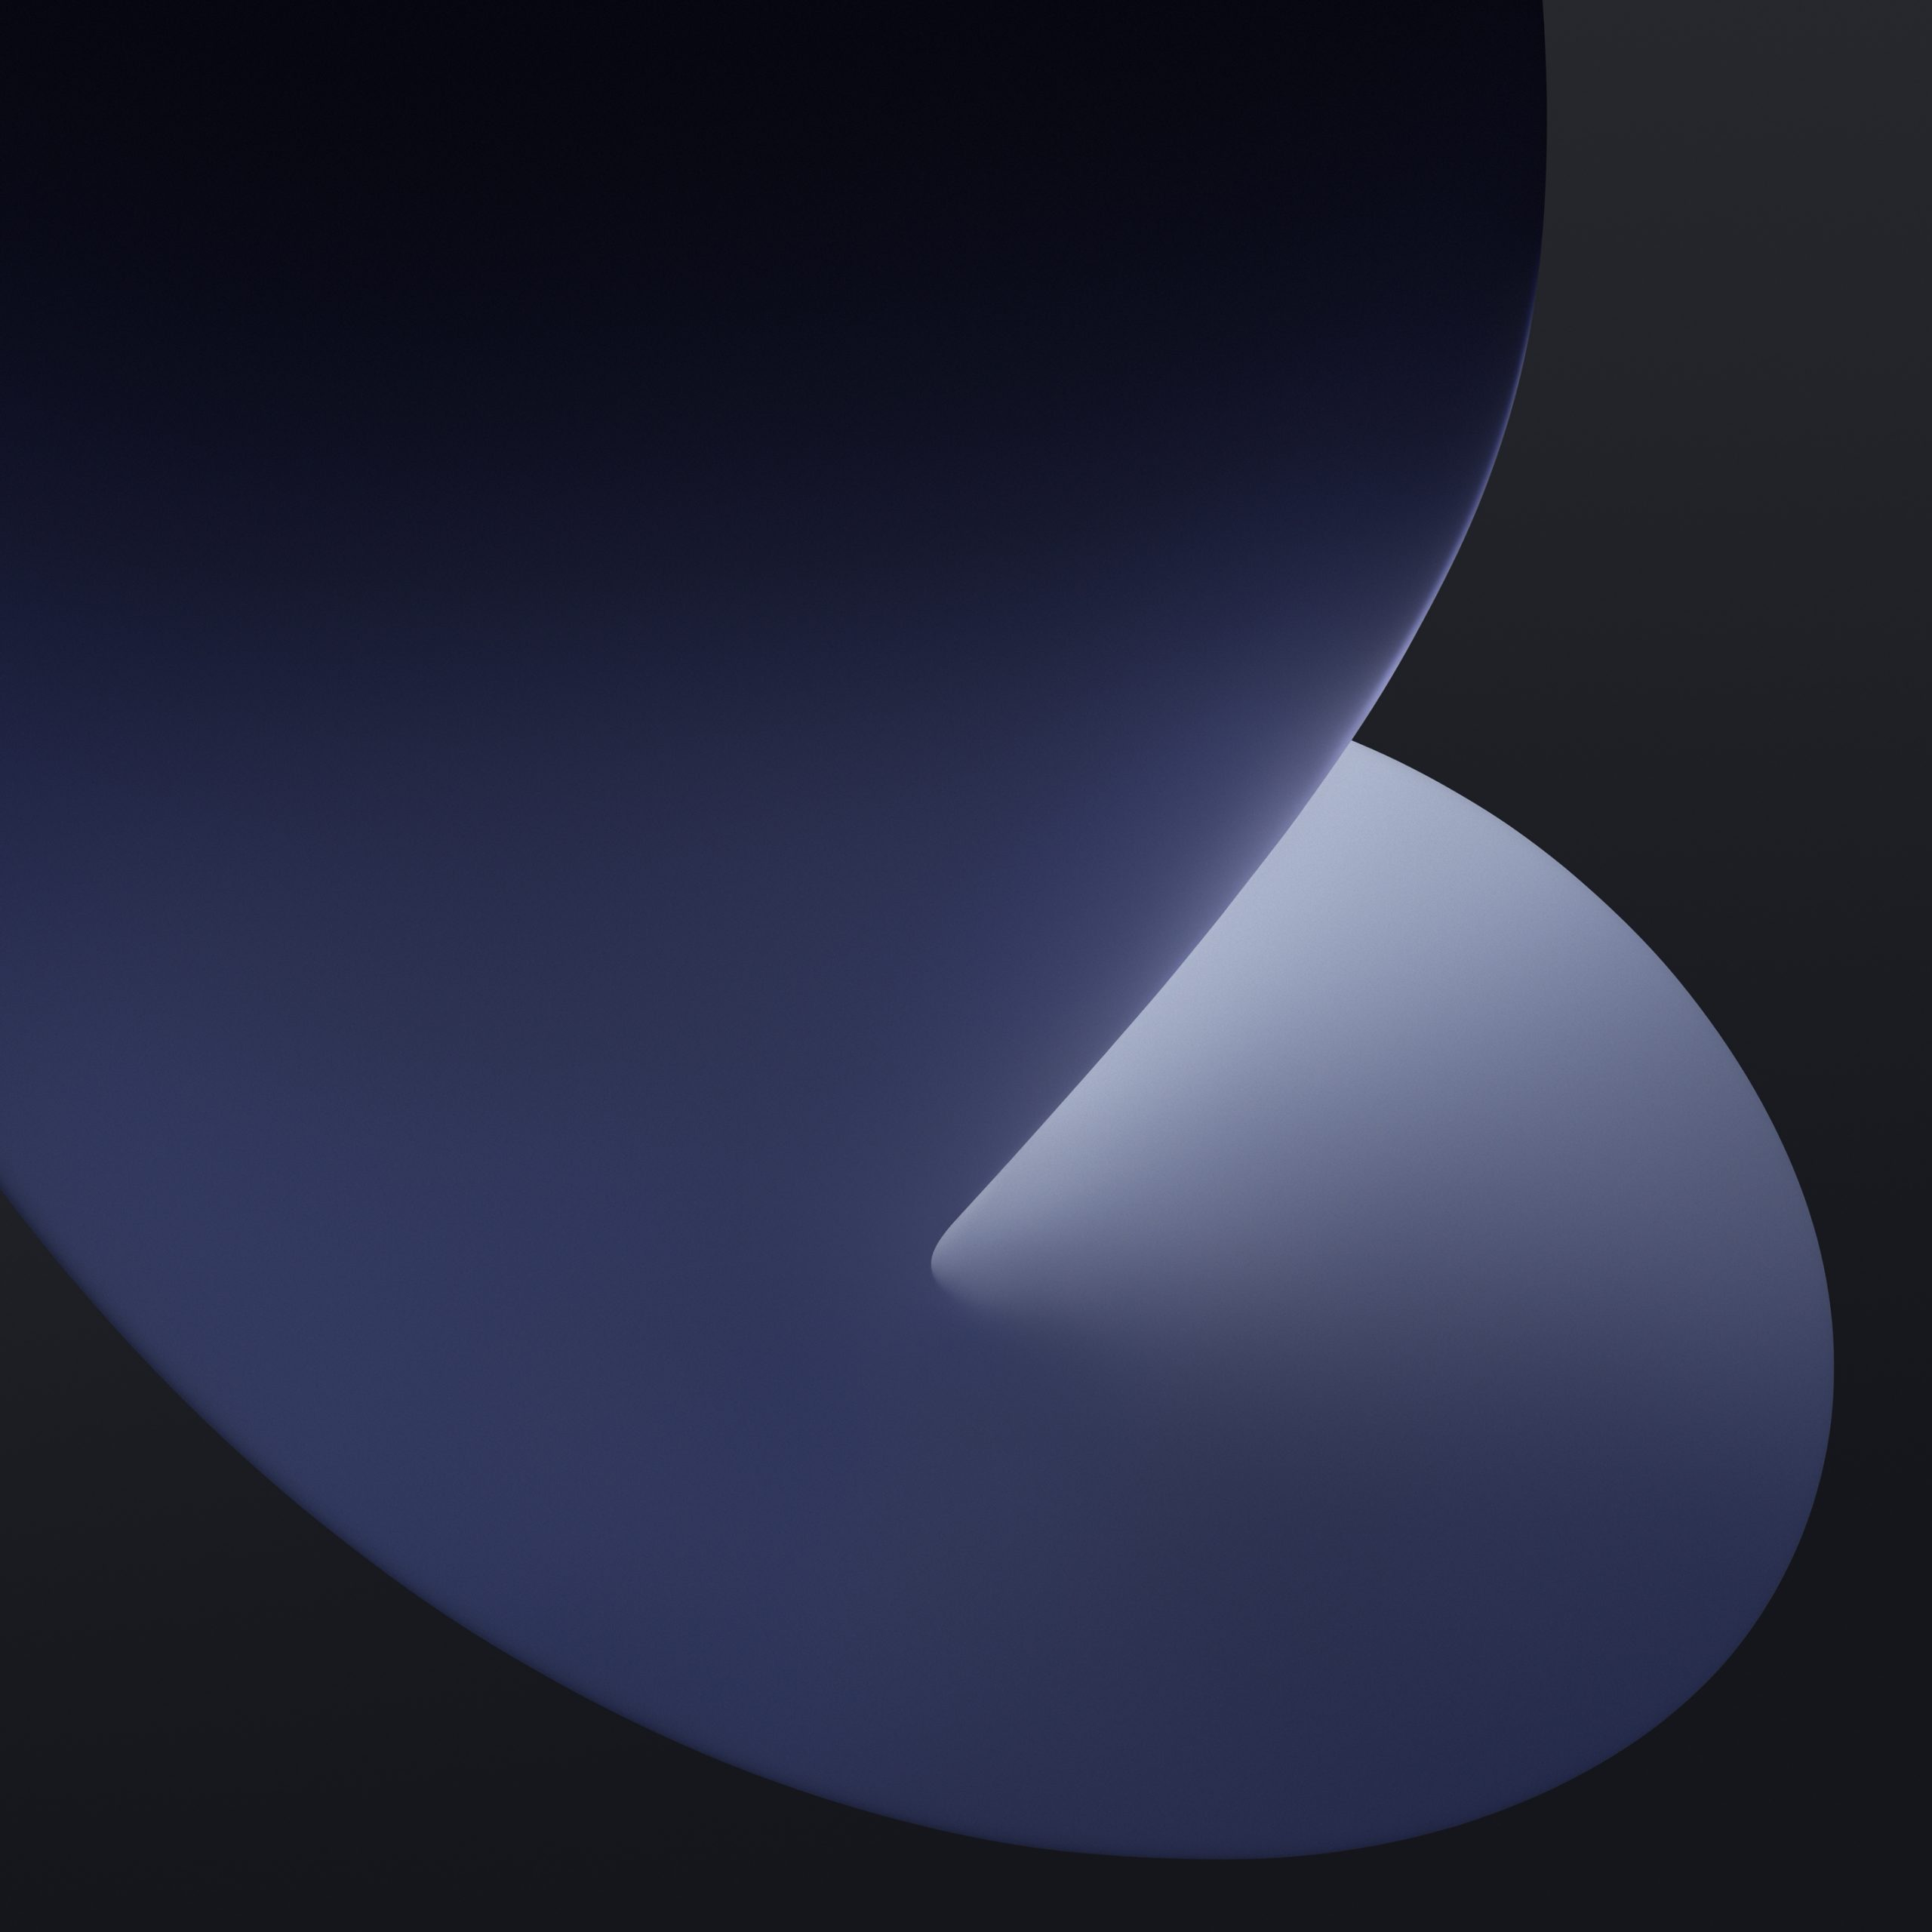 Download The Official Ios 14 Wallpapers Here Appletrack